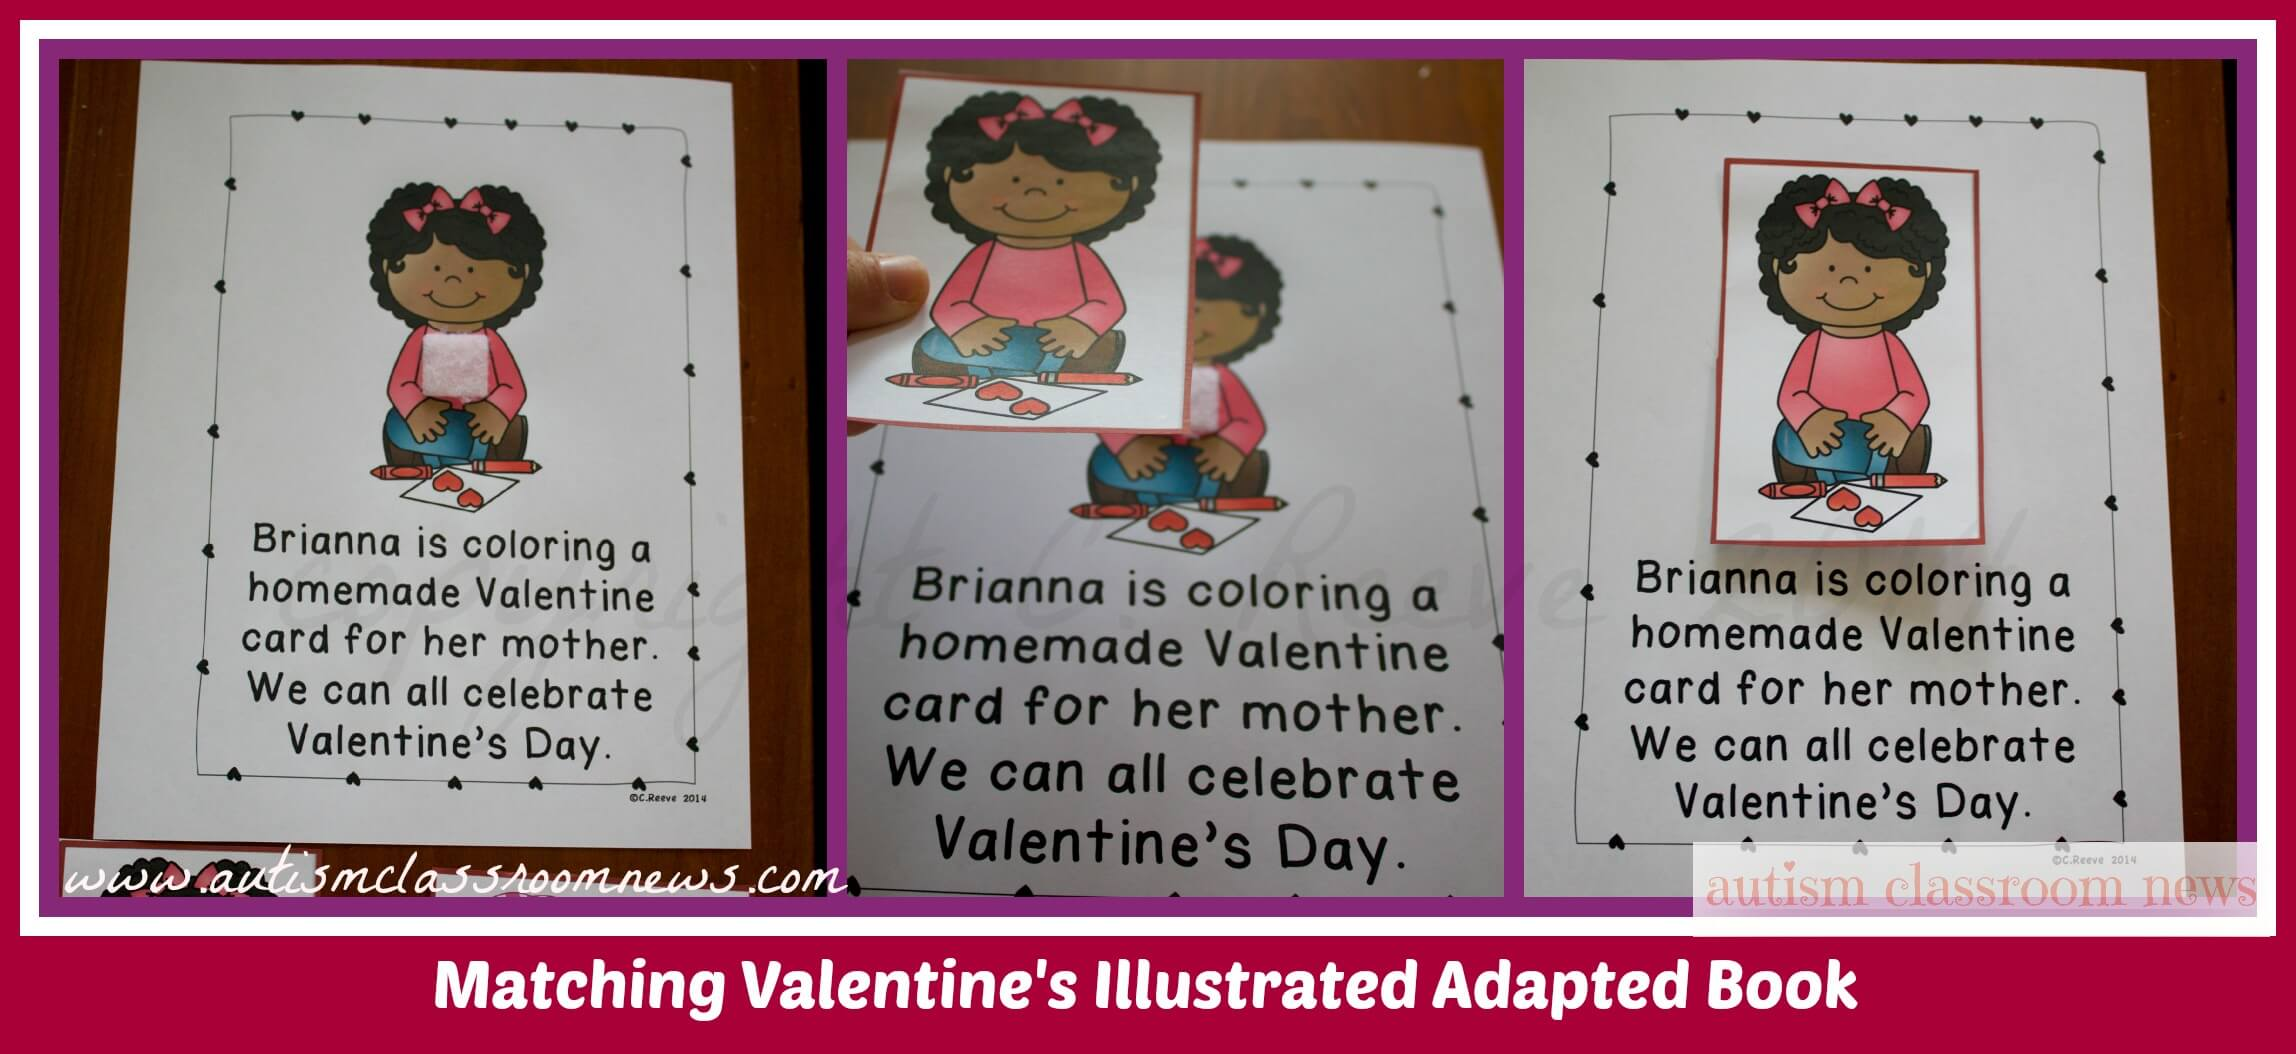 Matching Valentine's Illustrated Adapted Book